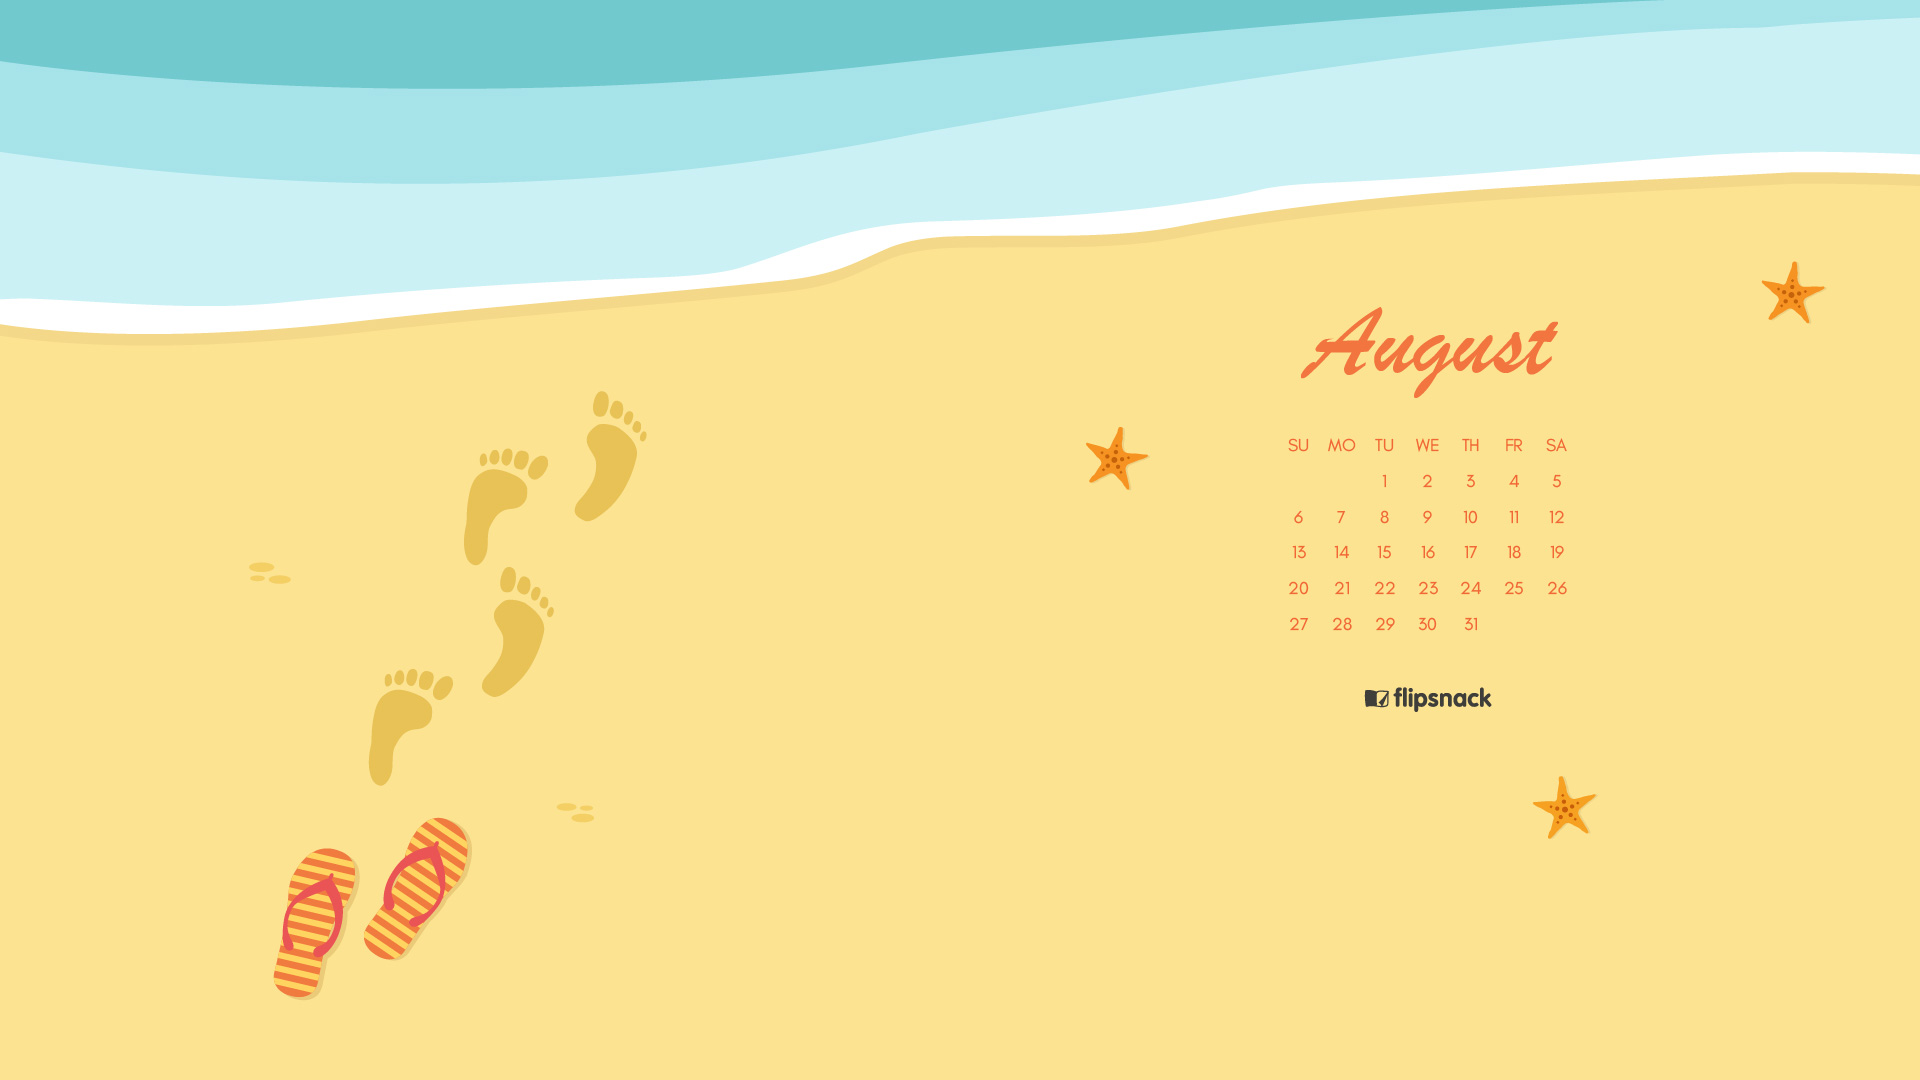 Calendar Wallpaper Pc : August calendar wallpaper for desktop background